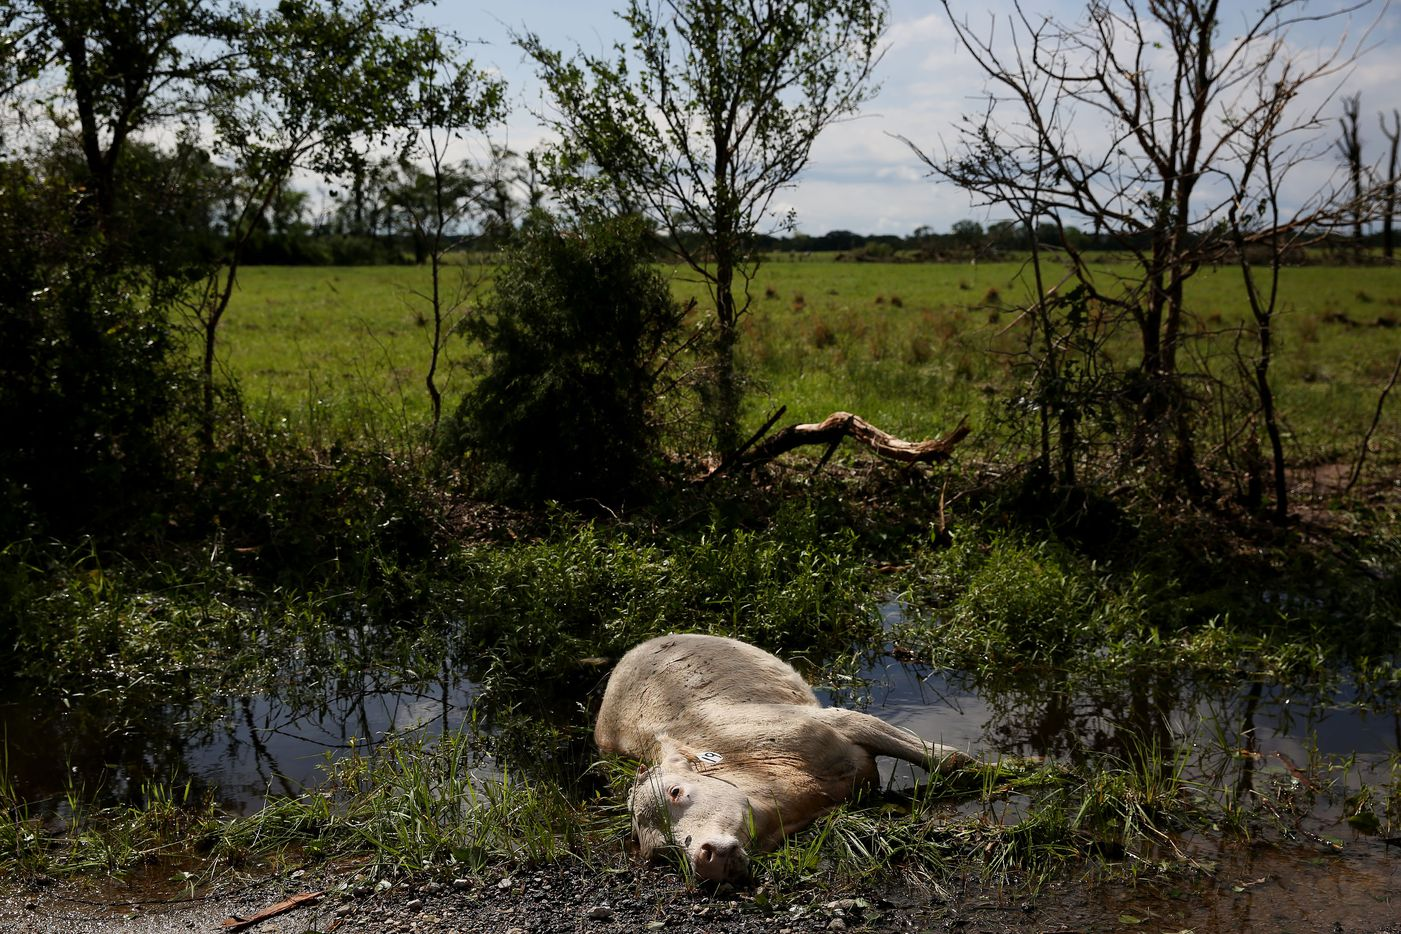 Dead livestock along County Road 1133 after a tornado impacted Fruitvale, Texas on Sunday April 30, 2017. Tornadoes whipped through Van Zandt, Henderson and Rains counties Saturday evening with reports of multiple deaths and dozens injured.